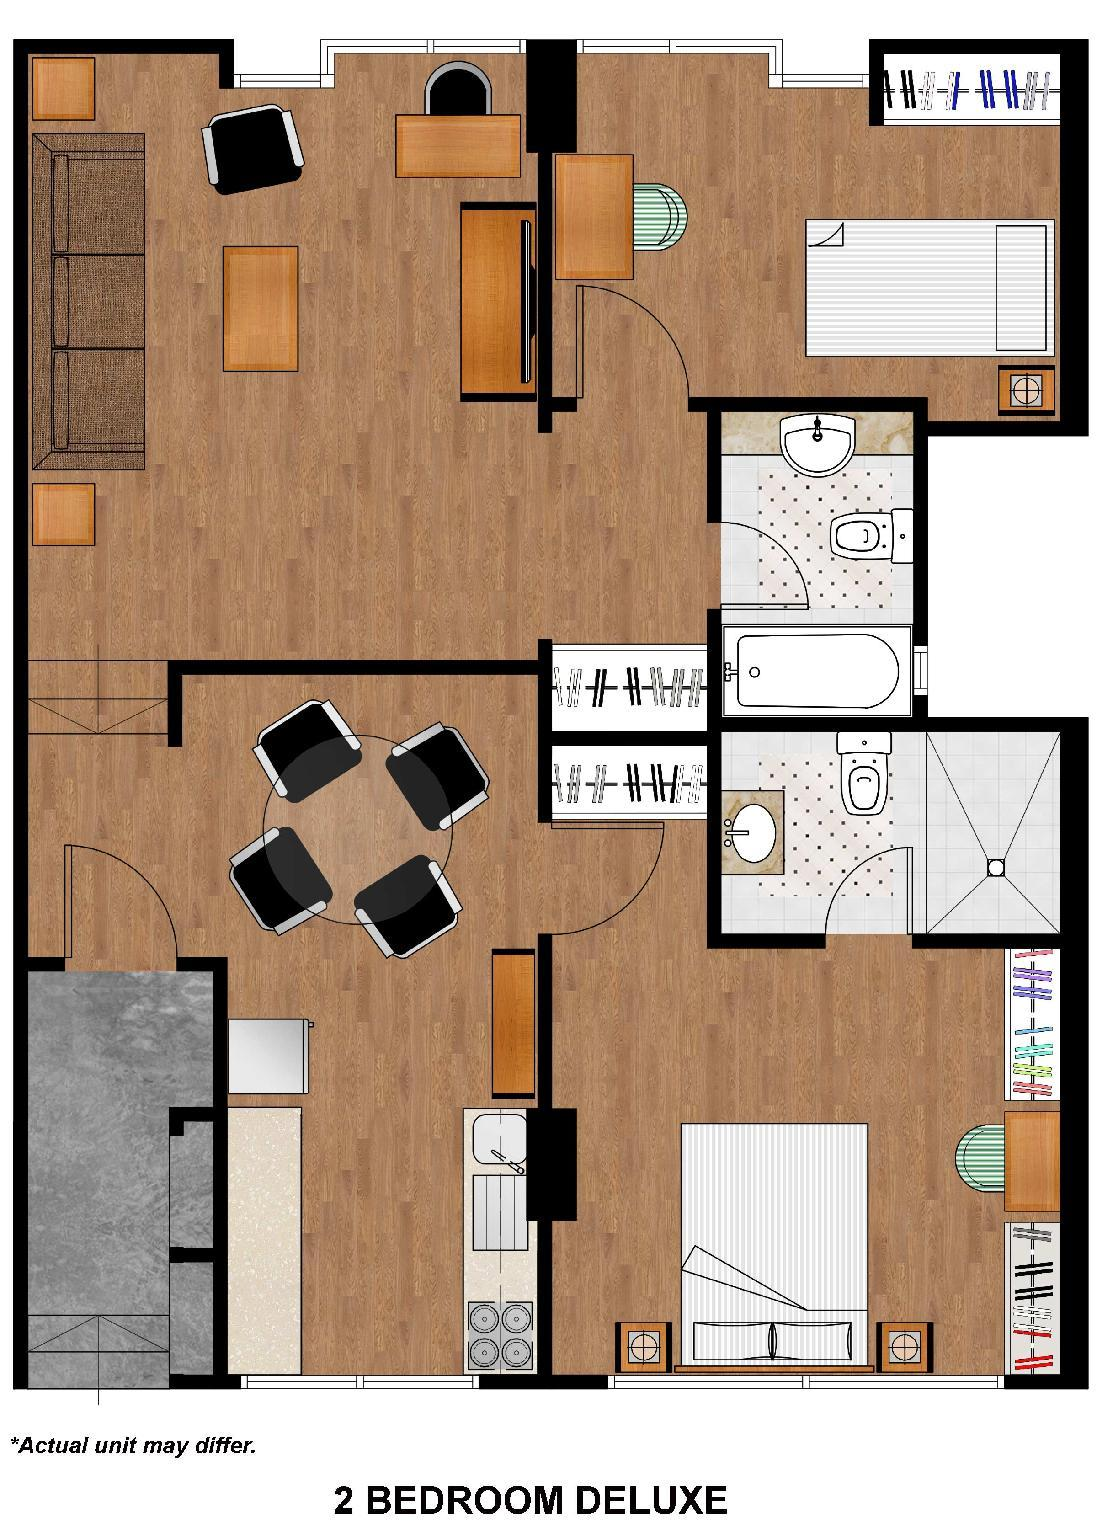 2 Bedroom Deluxe Apartment